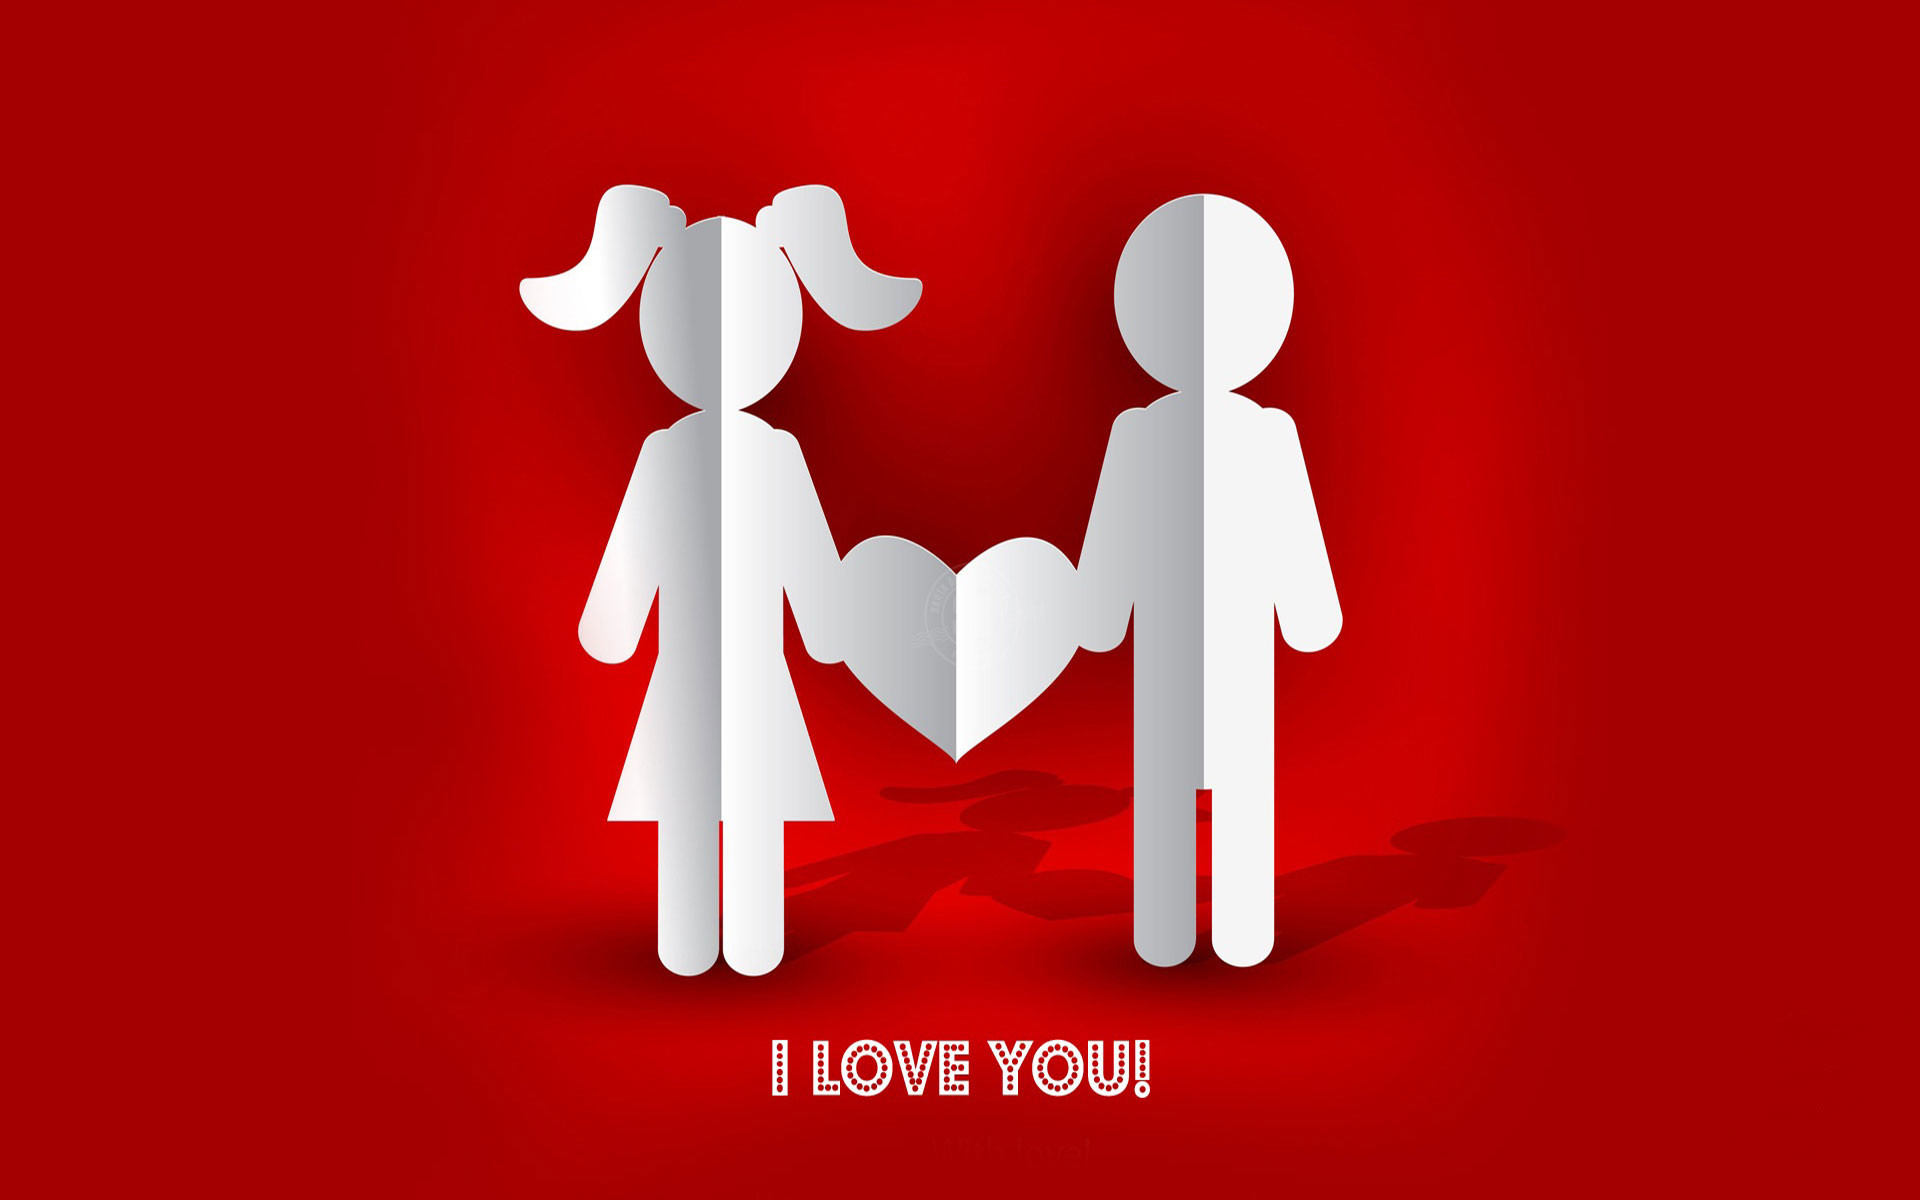 Free HD I Love You Wallpapers Cute I Love You Images | HD Wallpapers |  Pinterest | Animated heart, Wallpaper and Wallpaper downloads